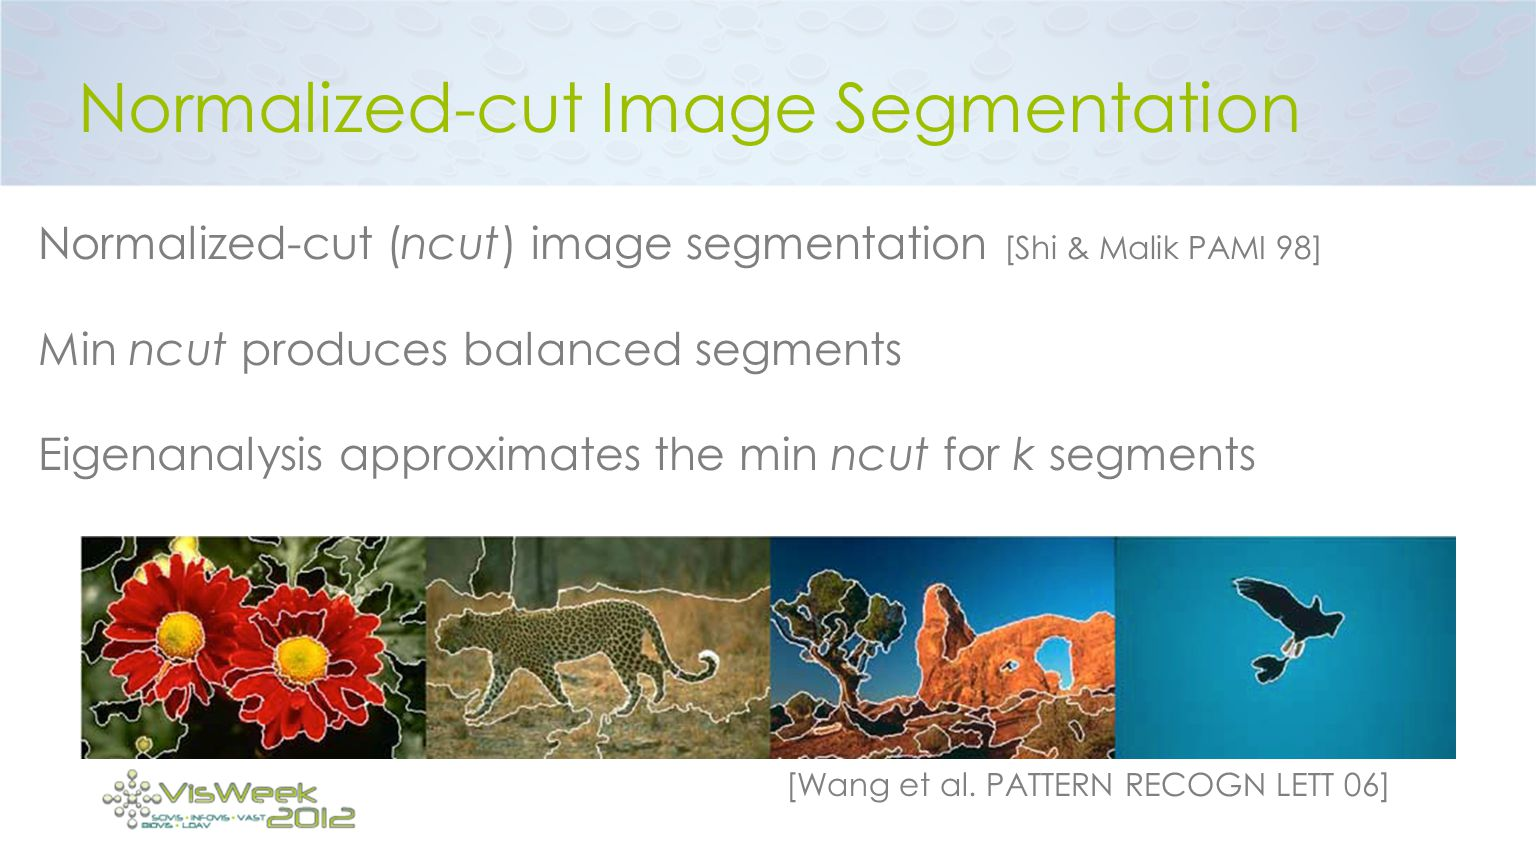 Normalized-cut Image Segmentation